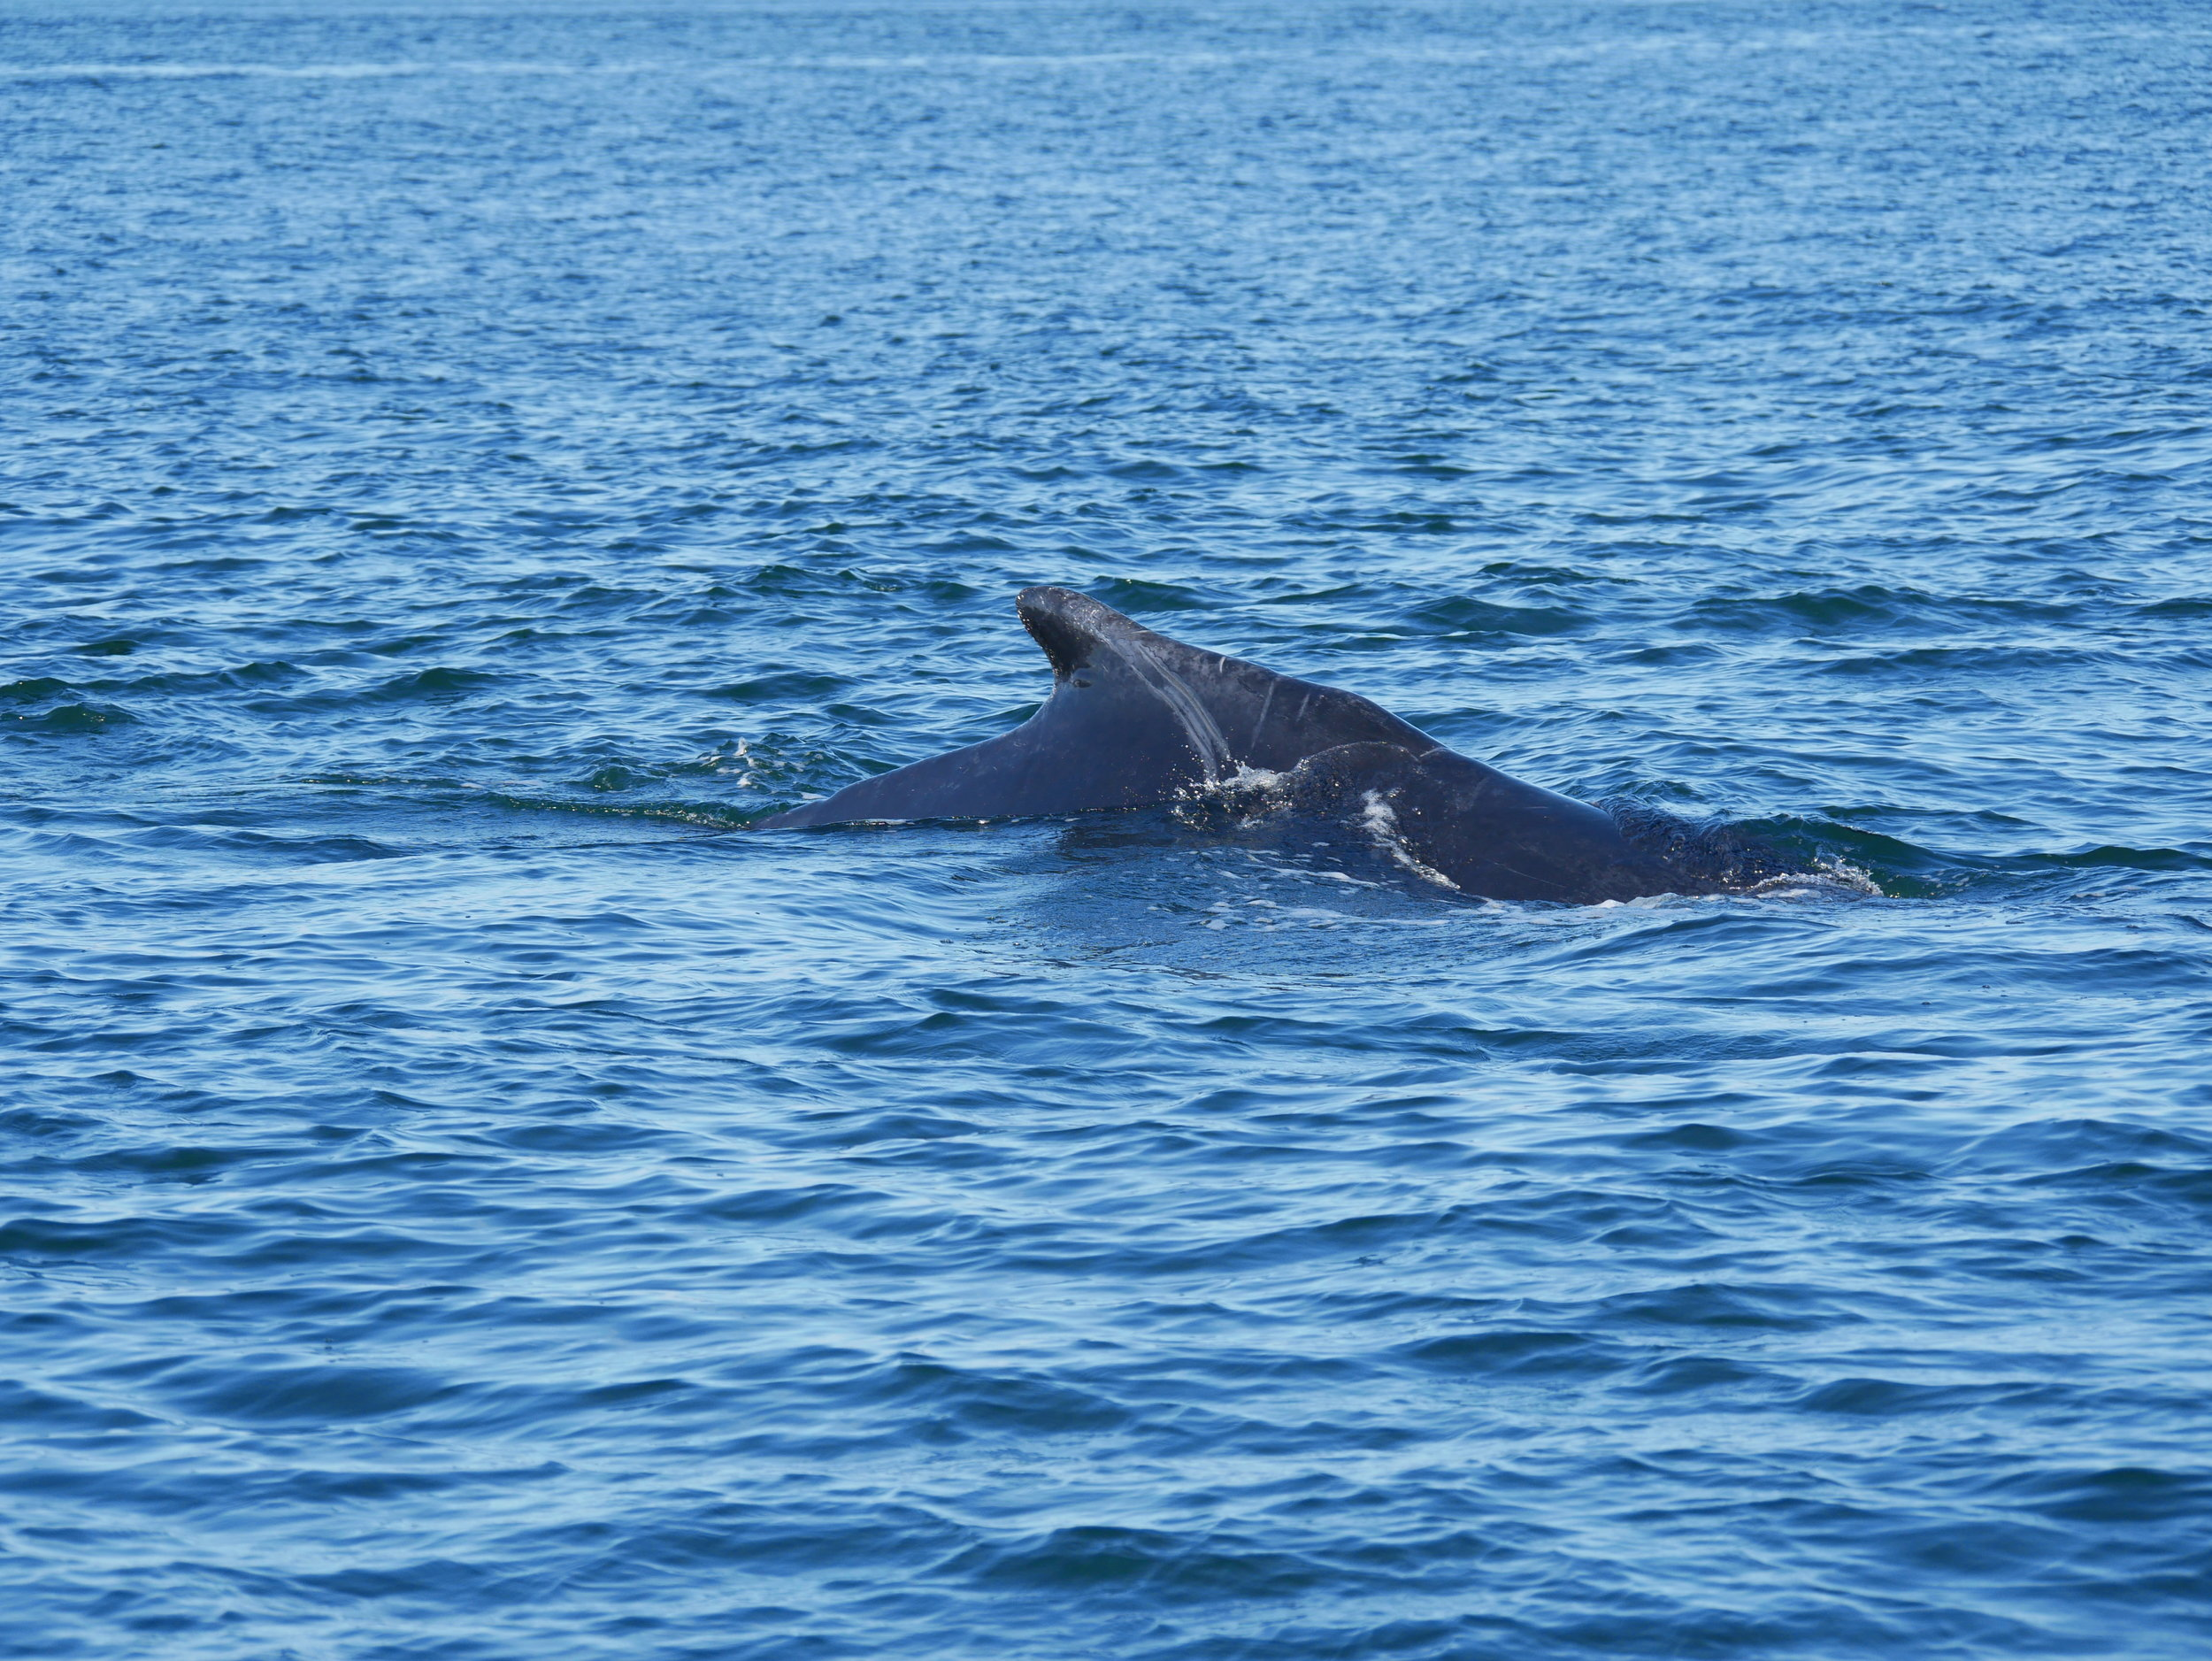 Noticeable scratches also help us to identify individual whales. Photo by Rodrigo Menezes